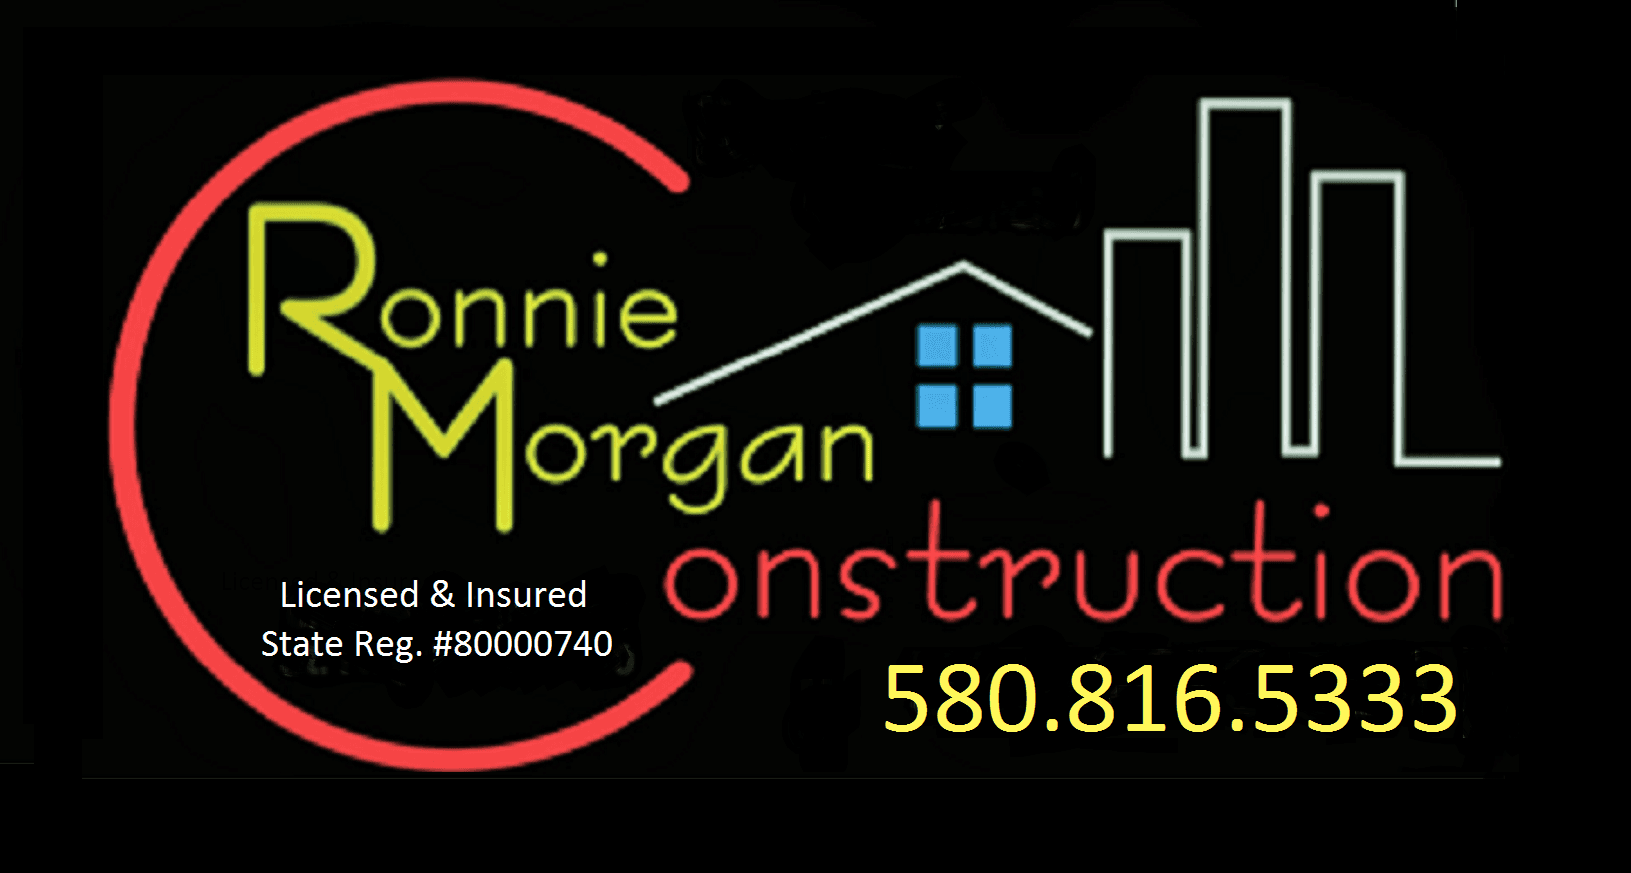 Ronnie Morgan Construction - logo